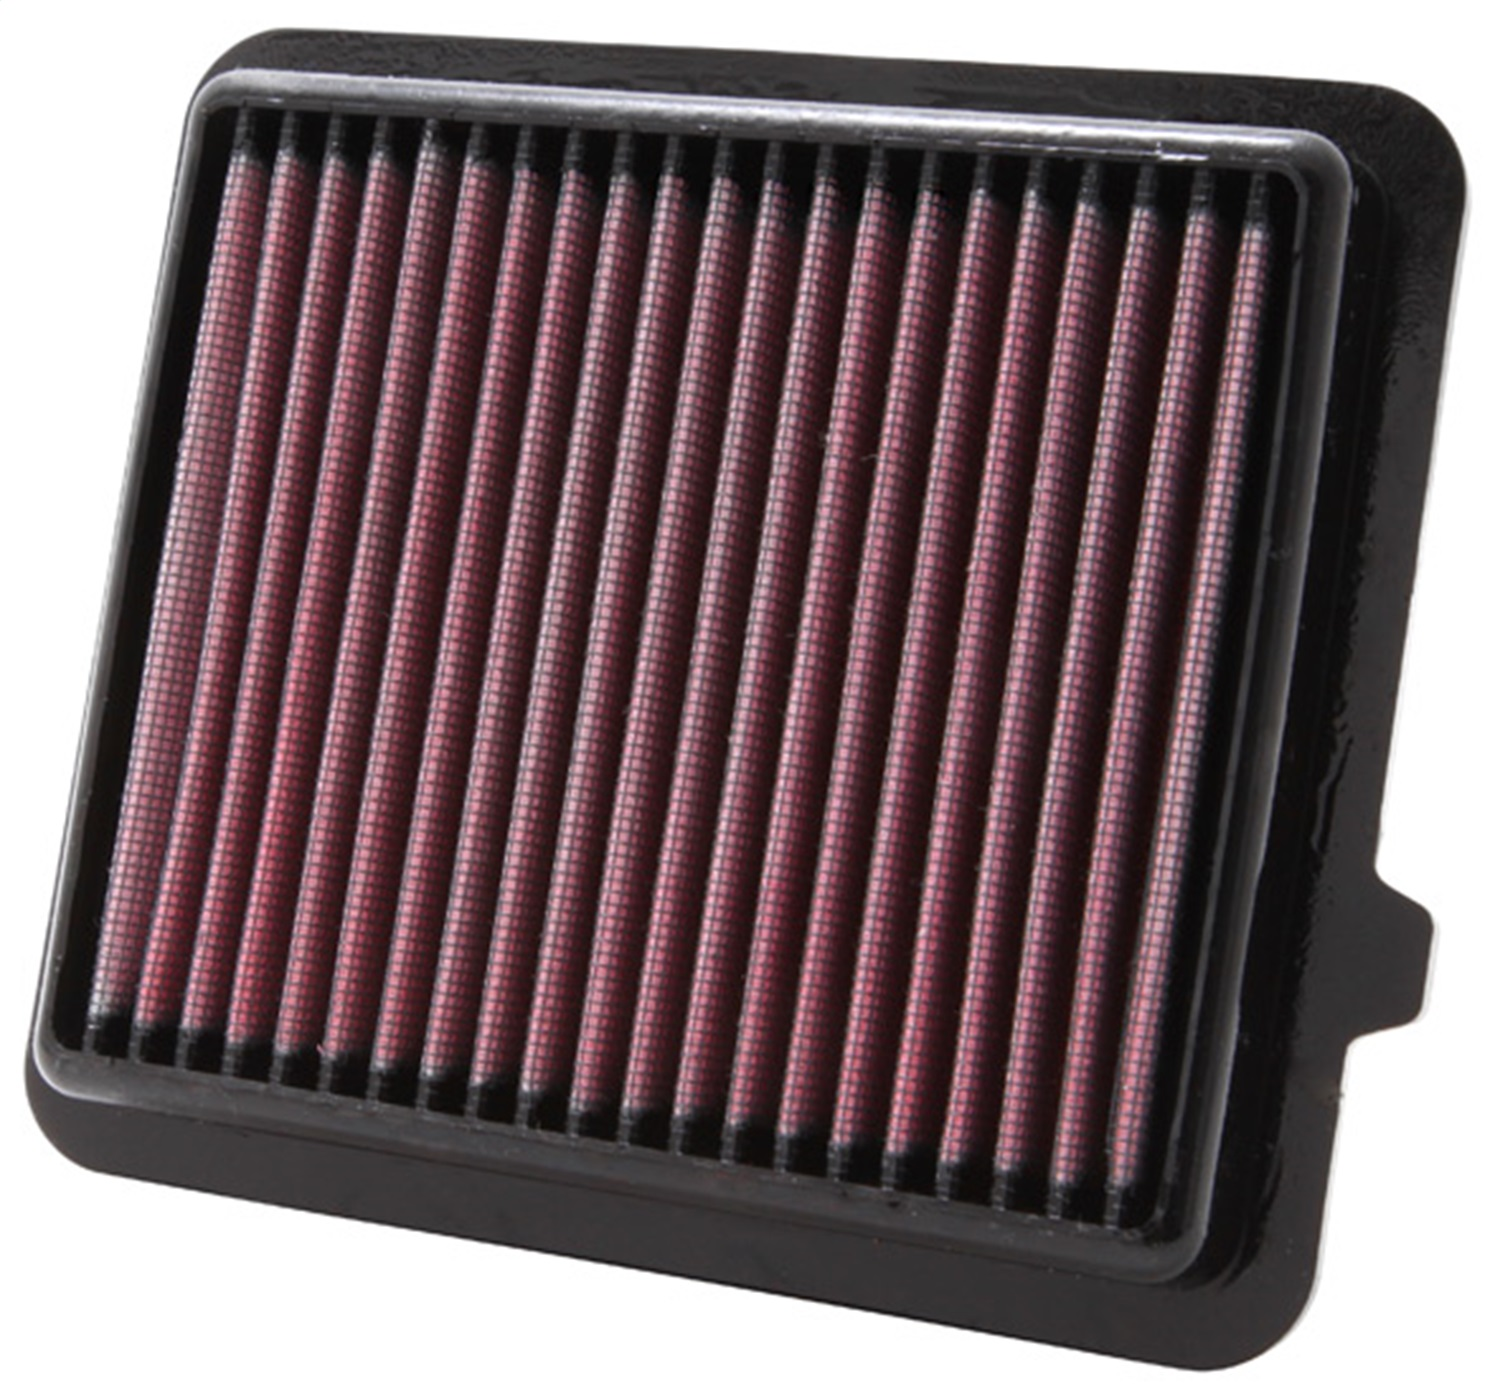 K&N Filters 33-2433 Air Filter Fits 10-13 Insight 33-2433